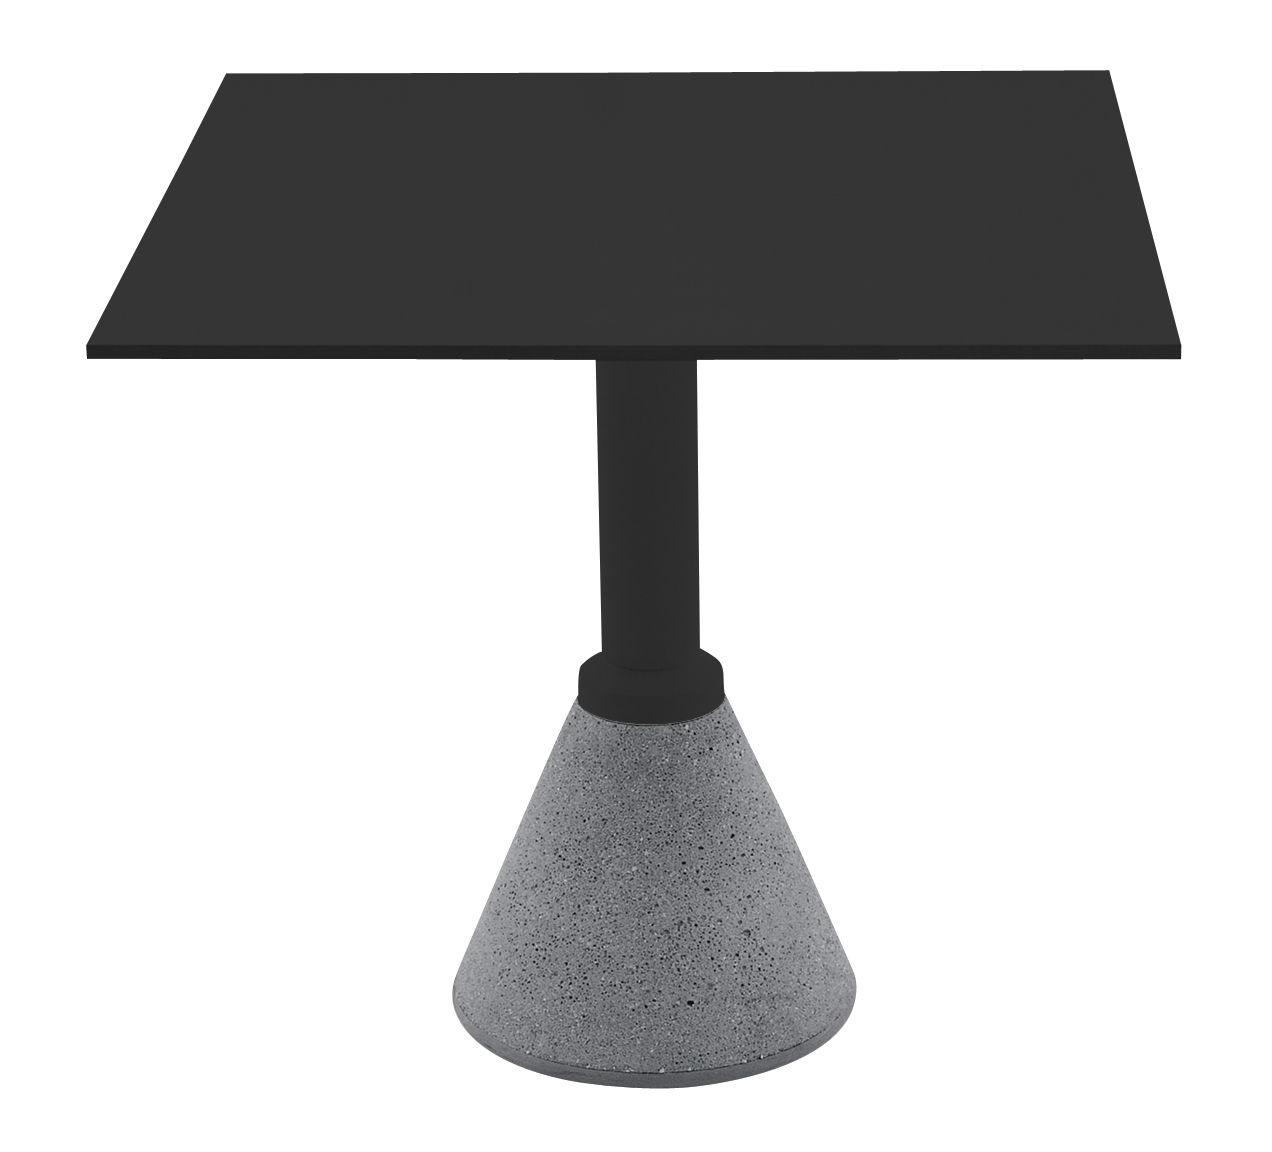 Outdoor - Garden Tables - One Bistrot Square table - 79 x 79 cm by Magis - Black 79 x 79 cm - Aluminium, Concrete, HPL